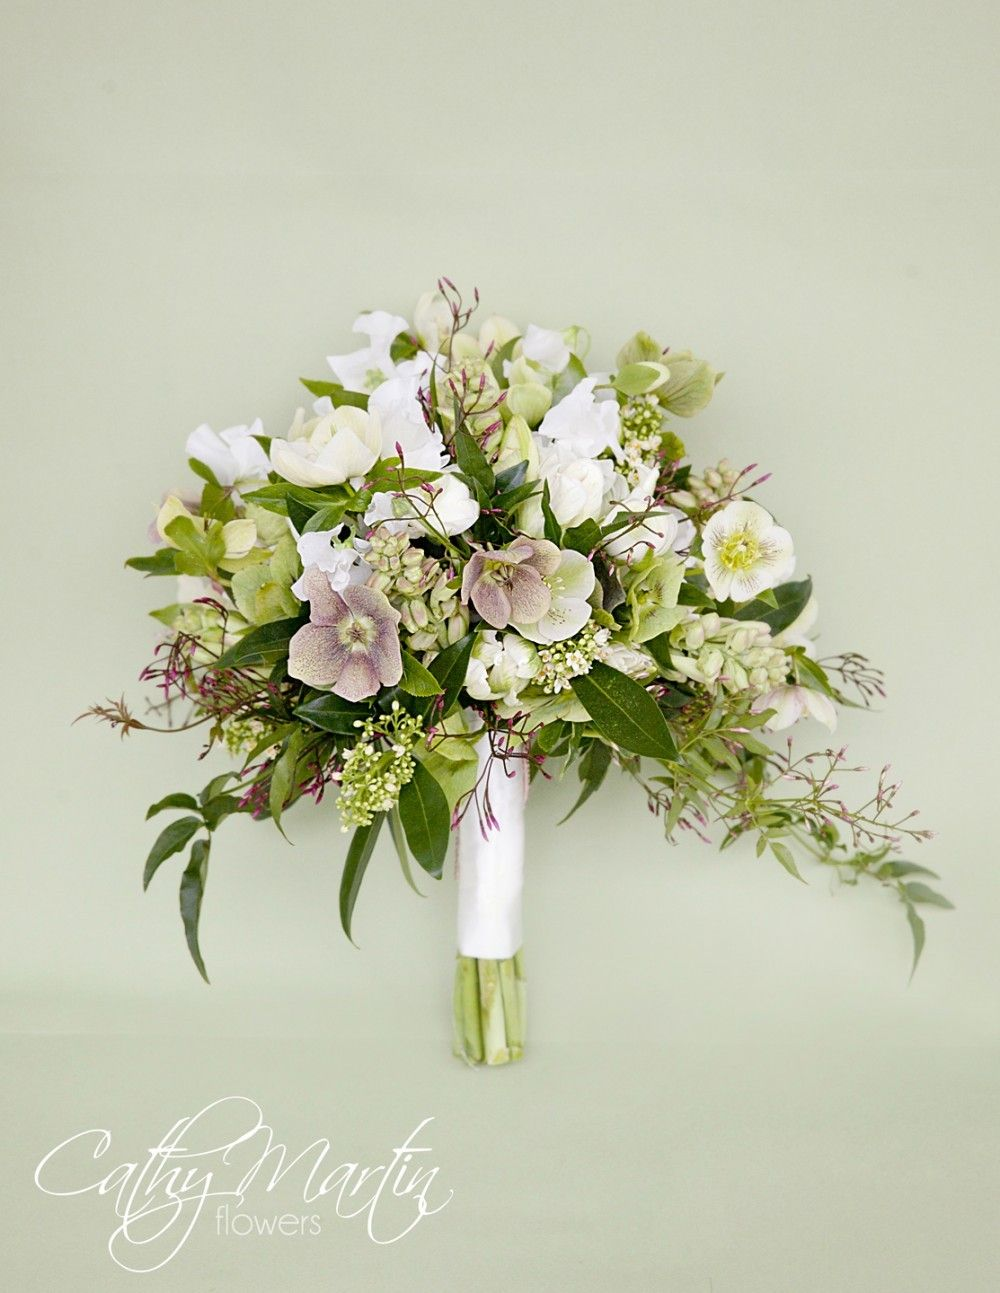 Not only beautiful but must smell wonderful hellebores skimmia hellebores skimmia tulips sweetpea and jasmine in this cathy martin flowers bouquet early spring izmirmasajfo Image collections